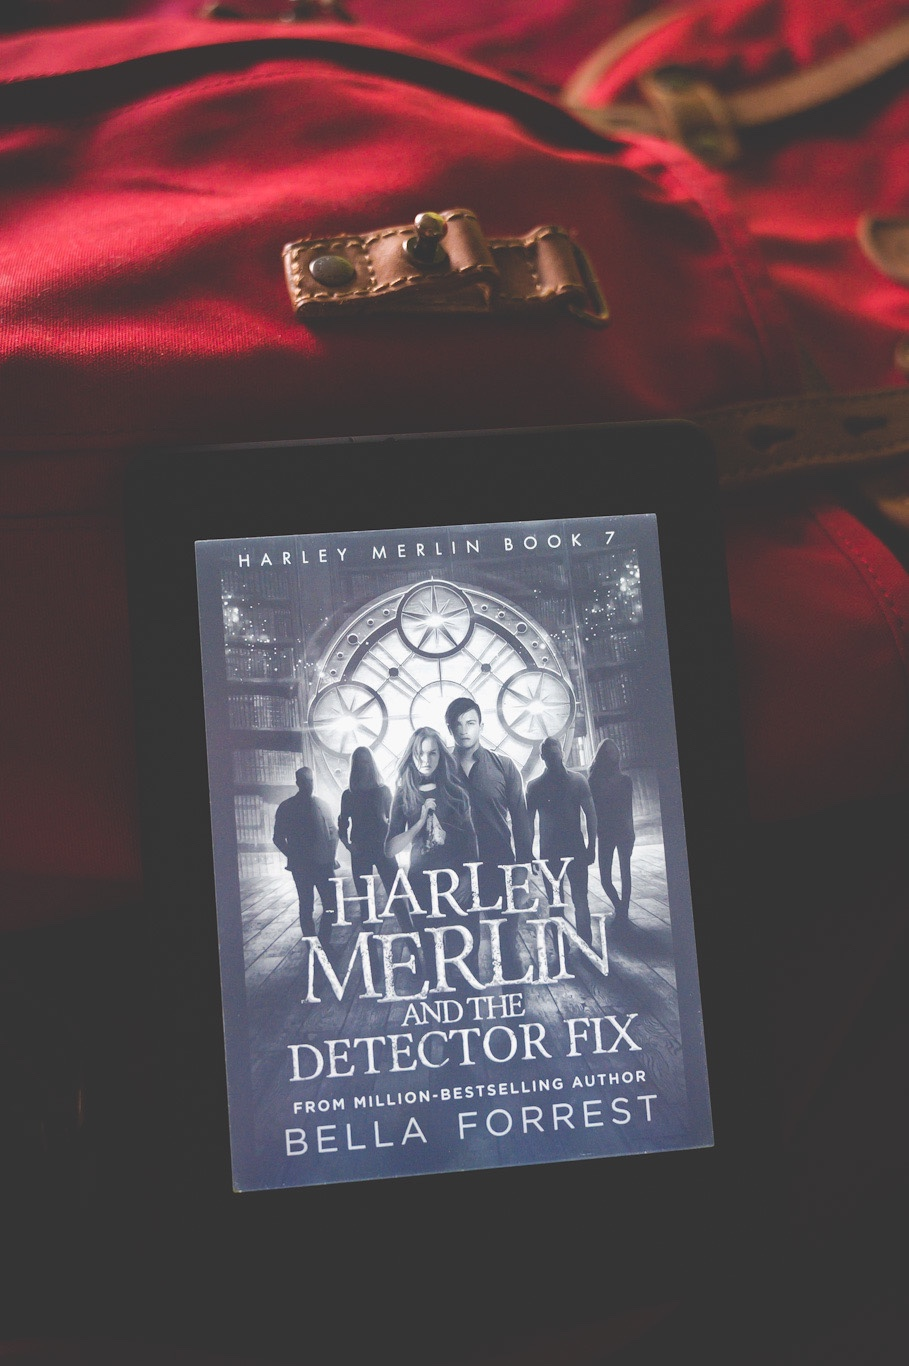 Book Review Harley Merlin And The Detector Fix The Girl With The Red Backpack Harley merlin has a lot of unanswered questions in her life. harley merlin and the detector fix